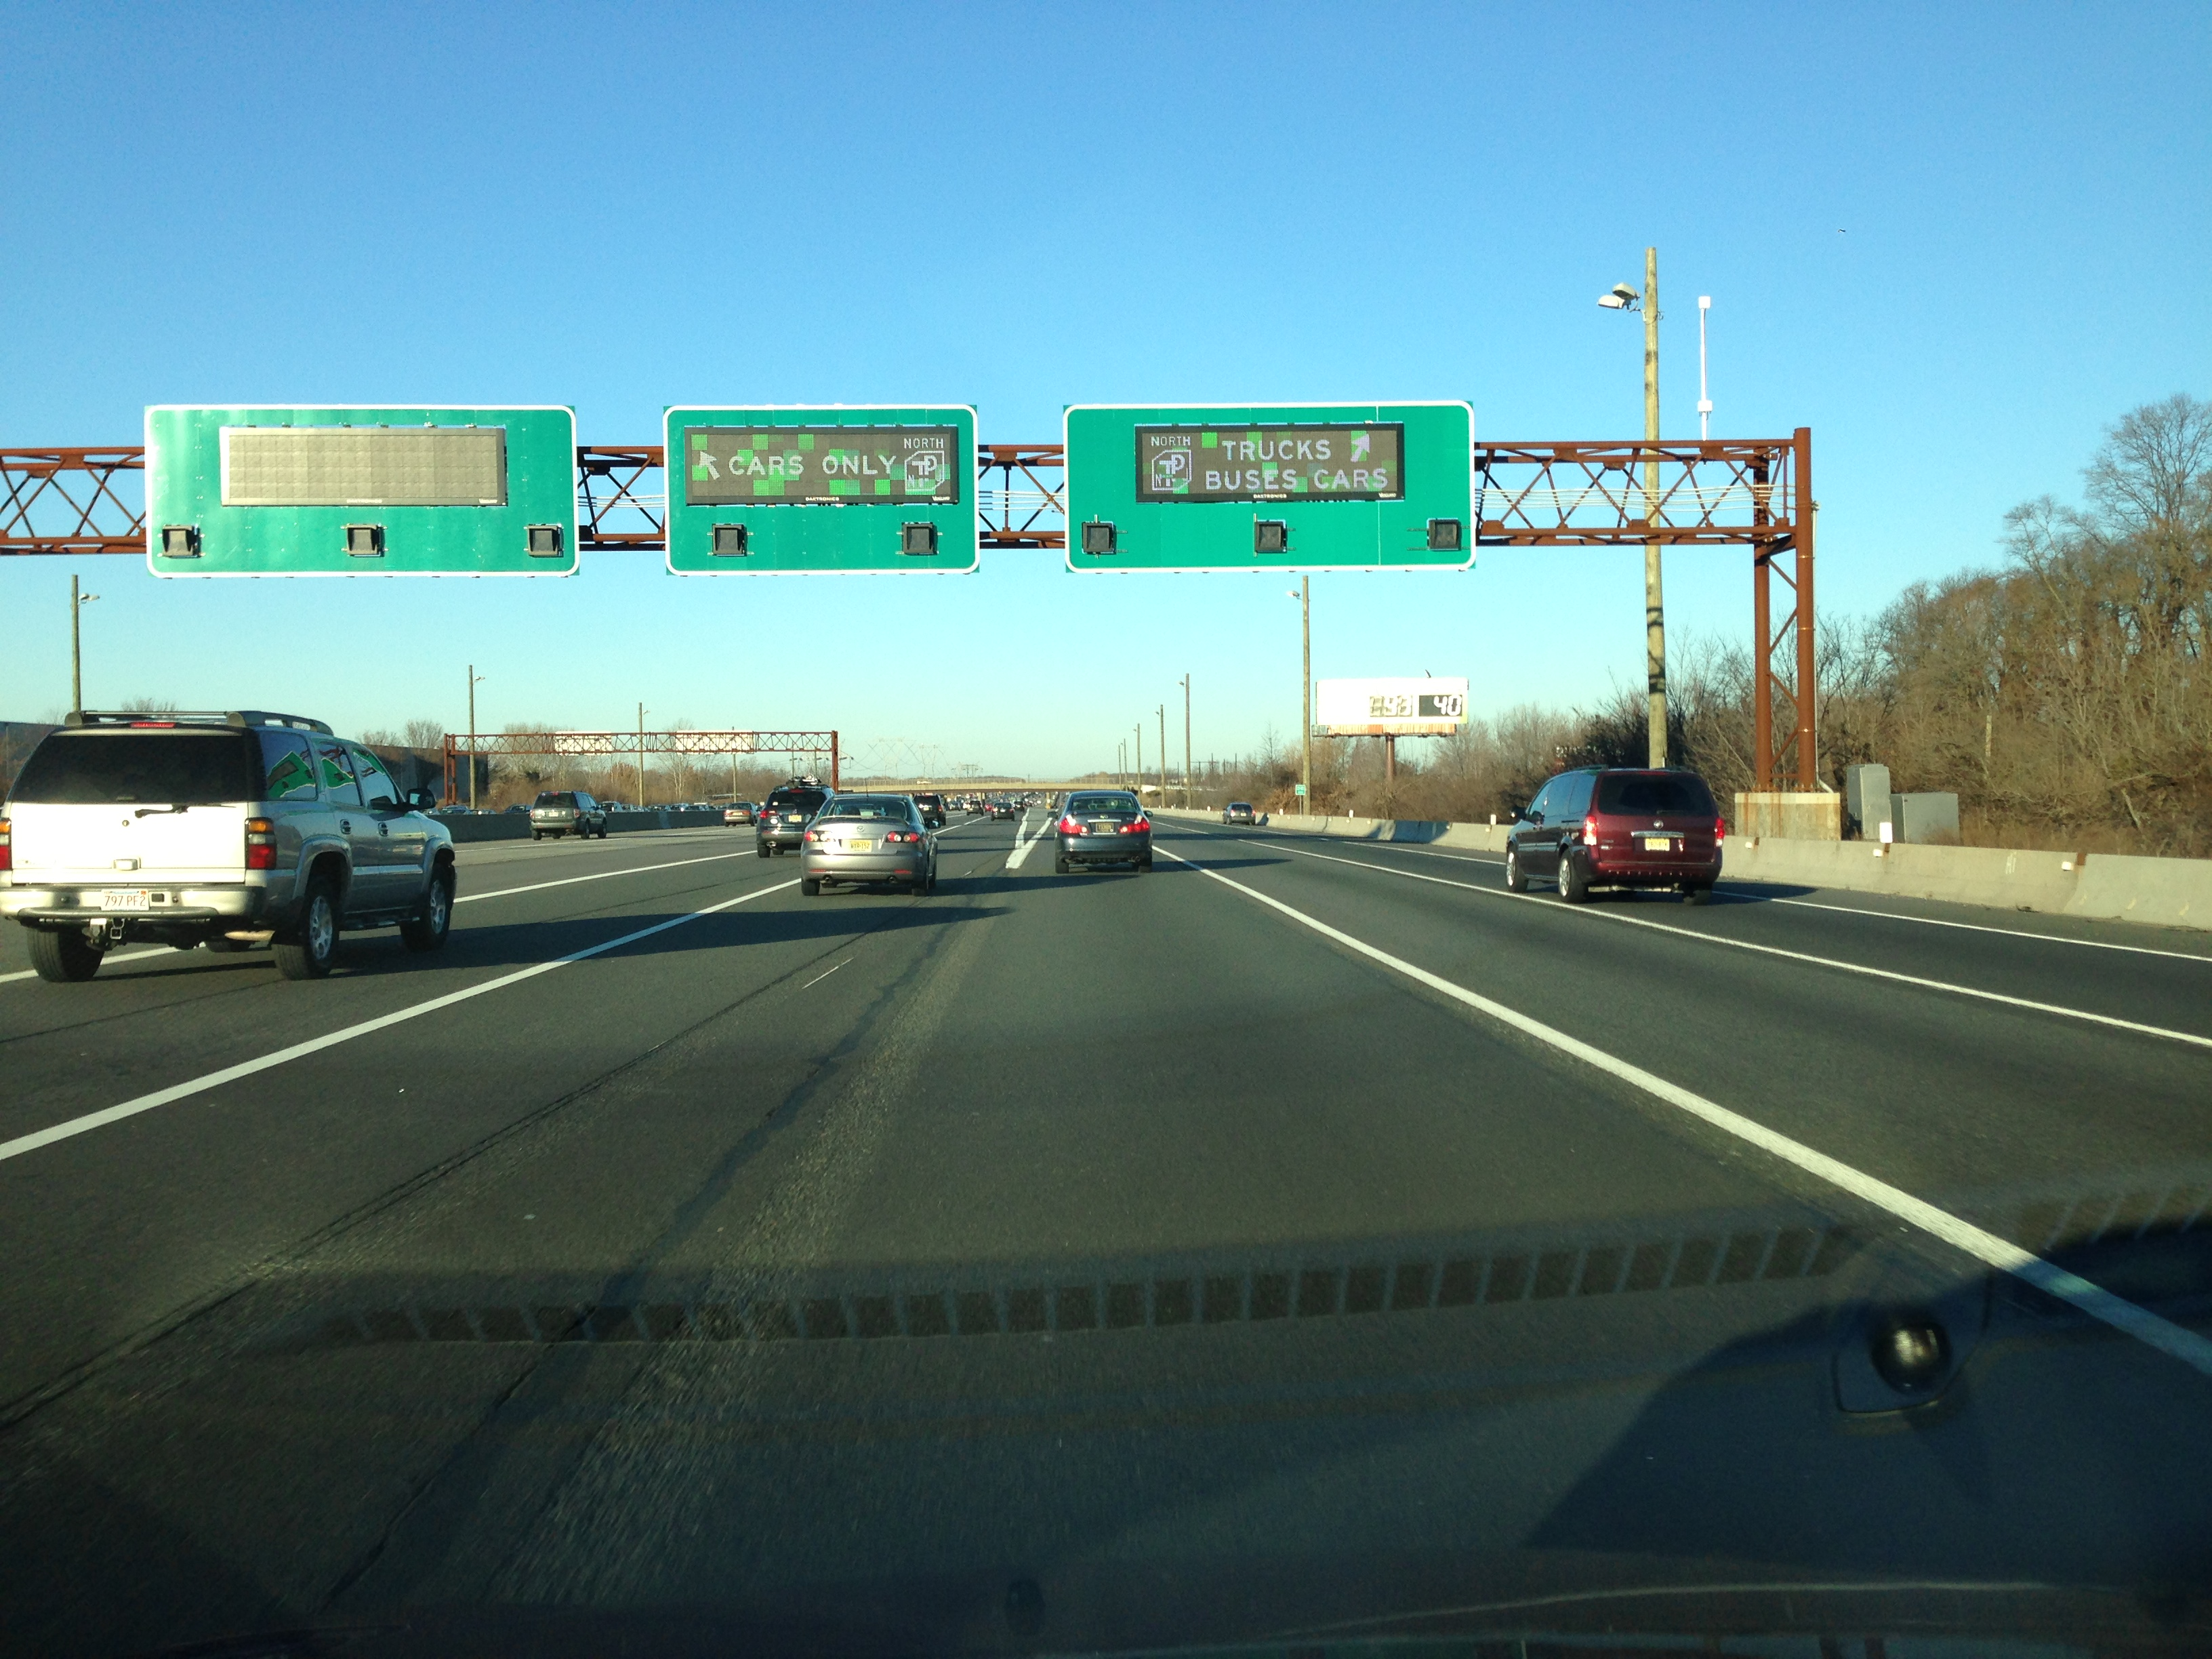 File:2013-12-28 15 21 49 New variable message sign at the ...